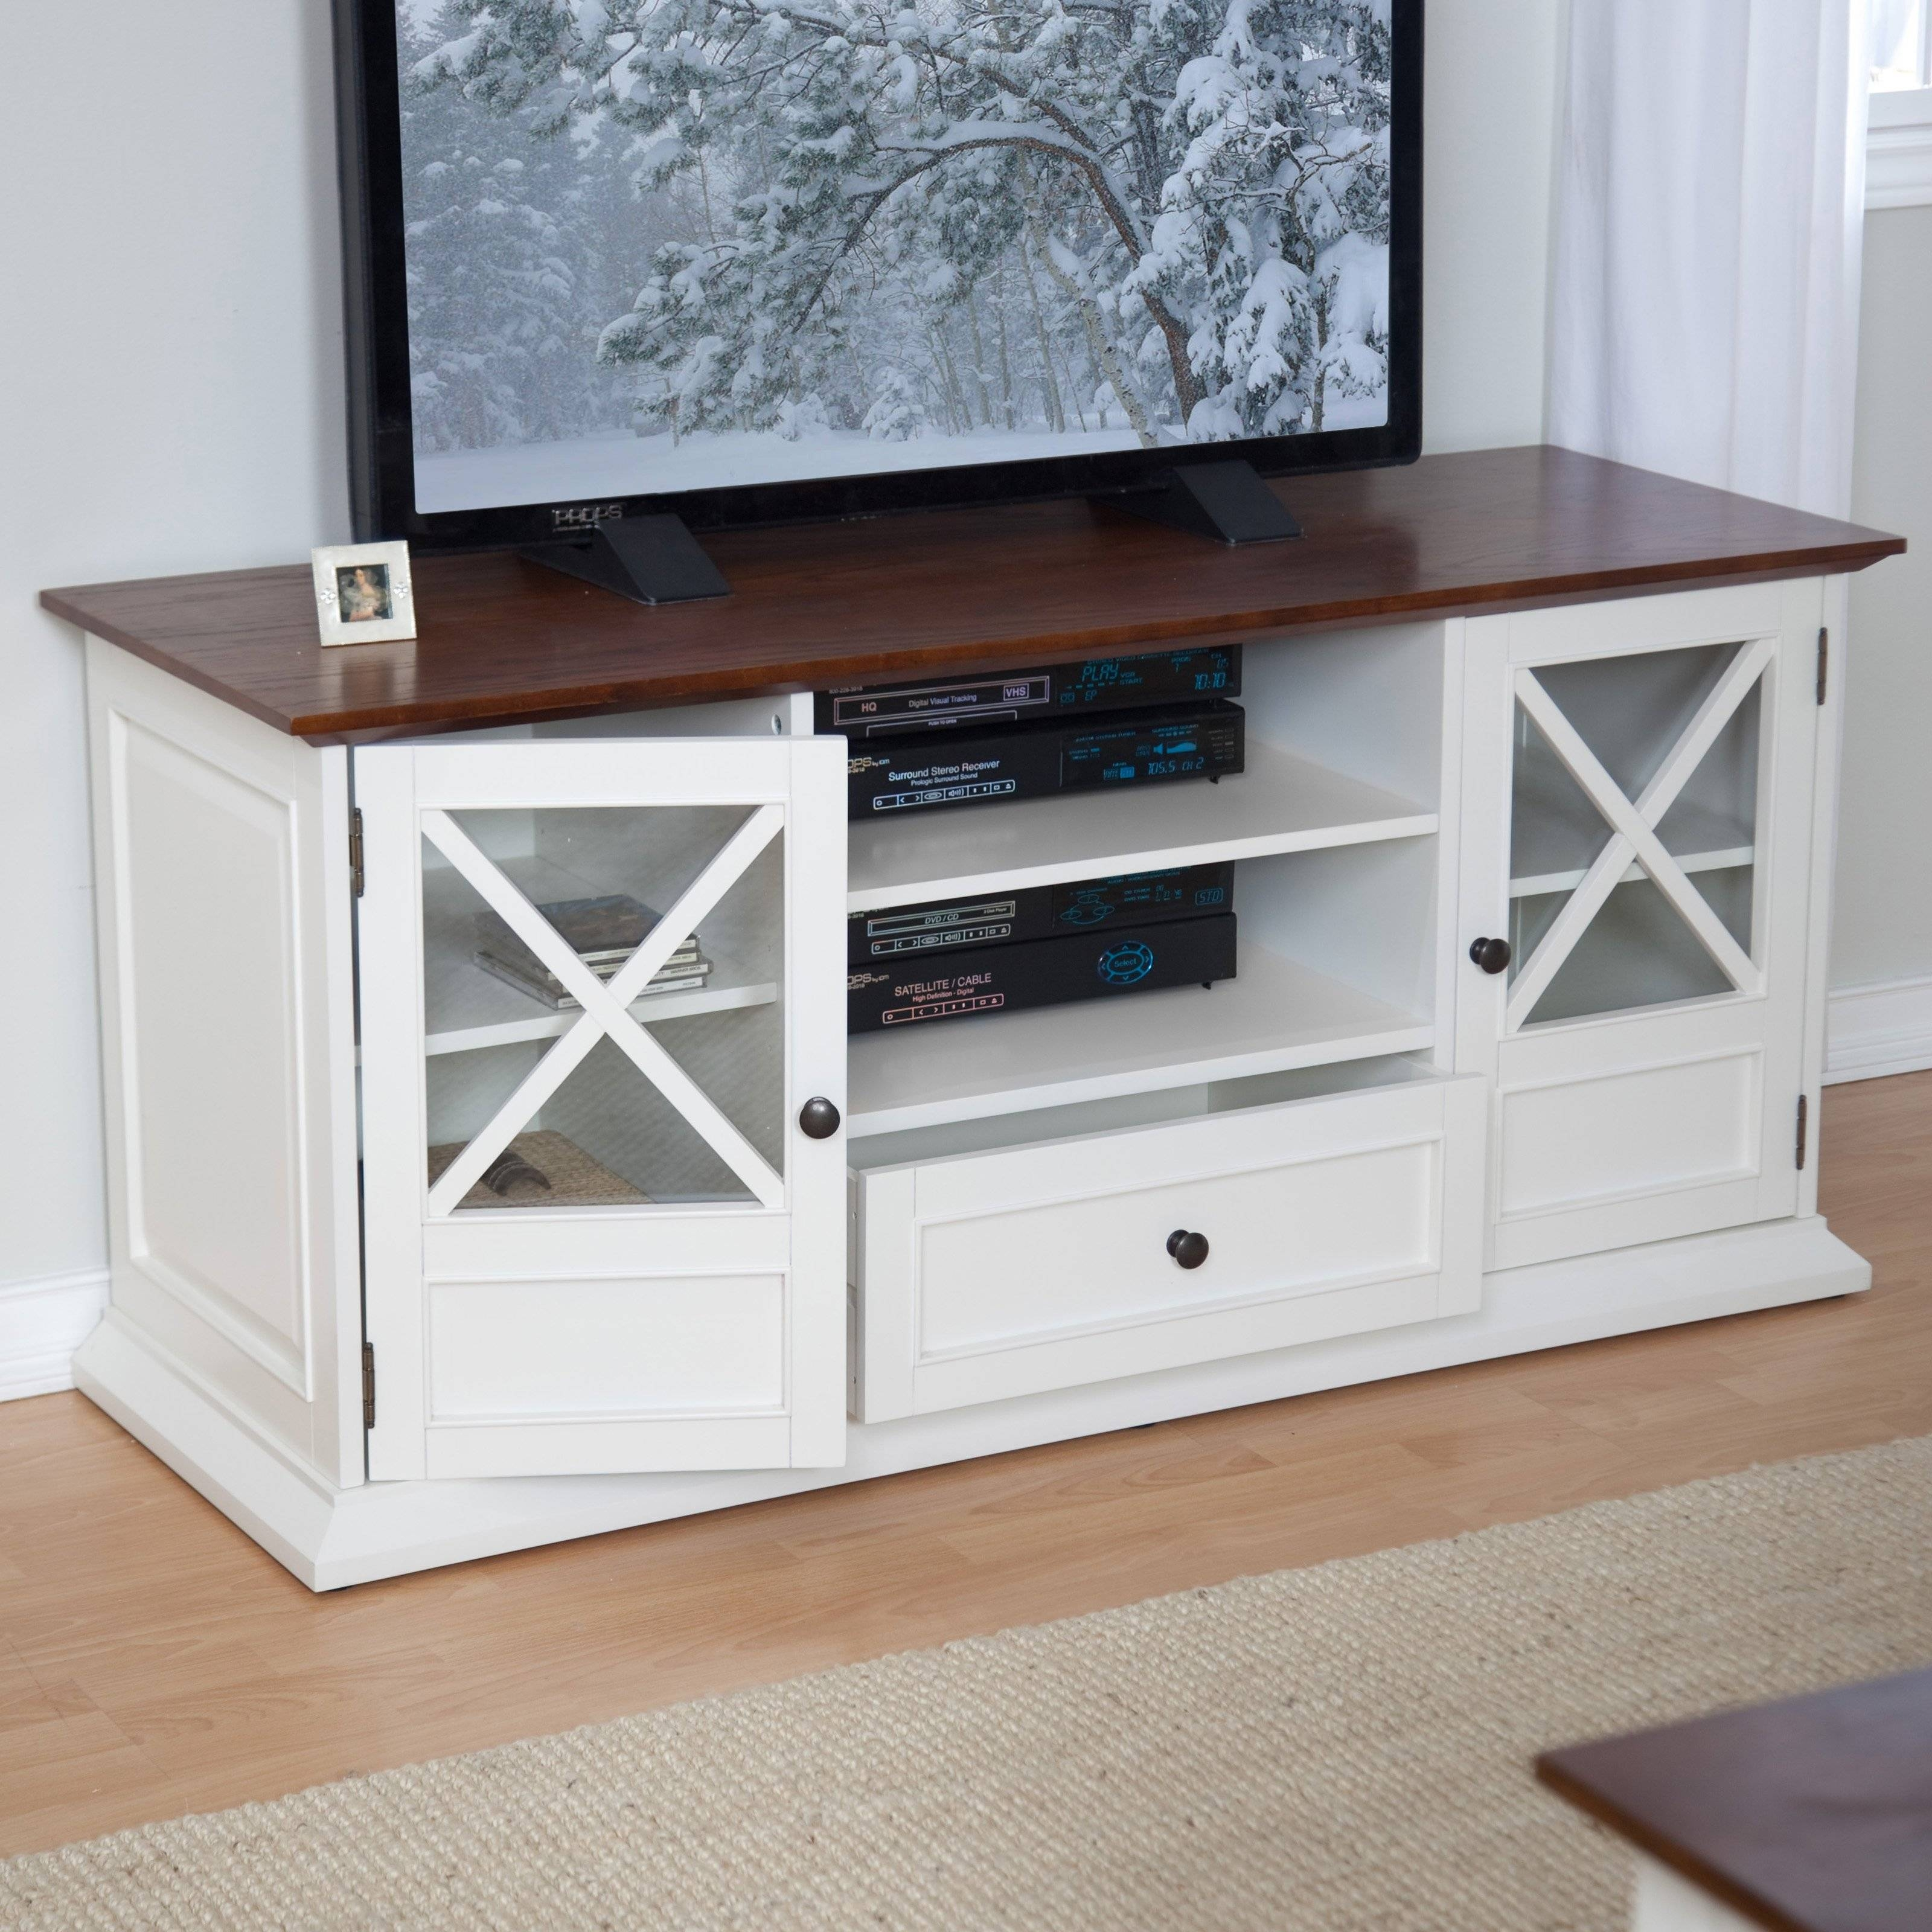 Belham Living Hampton Tv Stand - White/oak | Hayneedle within Long White Tv Stands (Image 3 of 15)